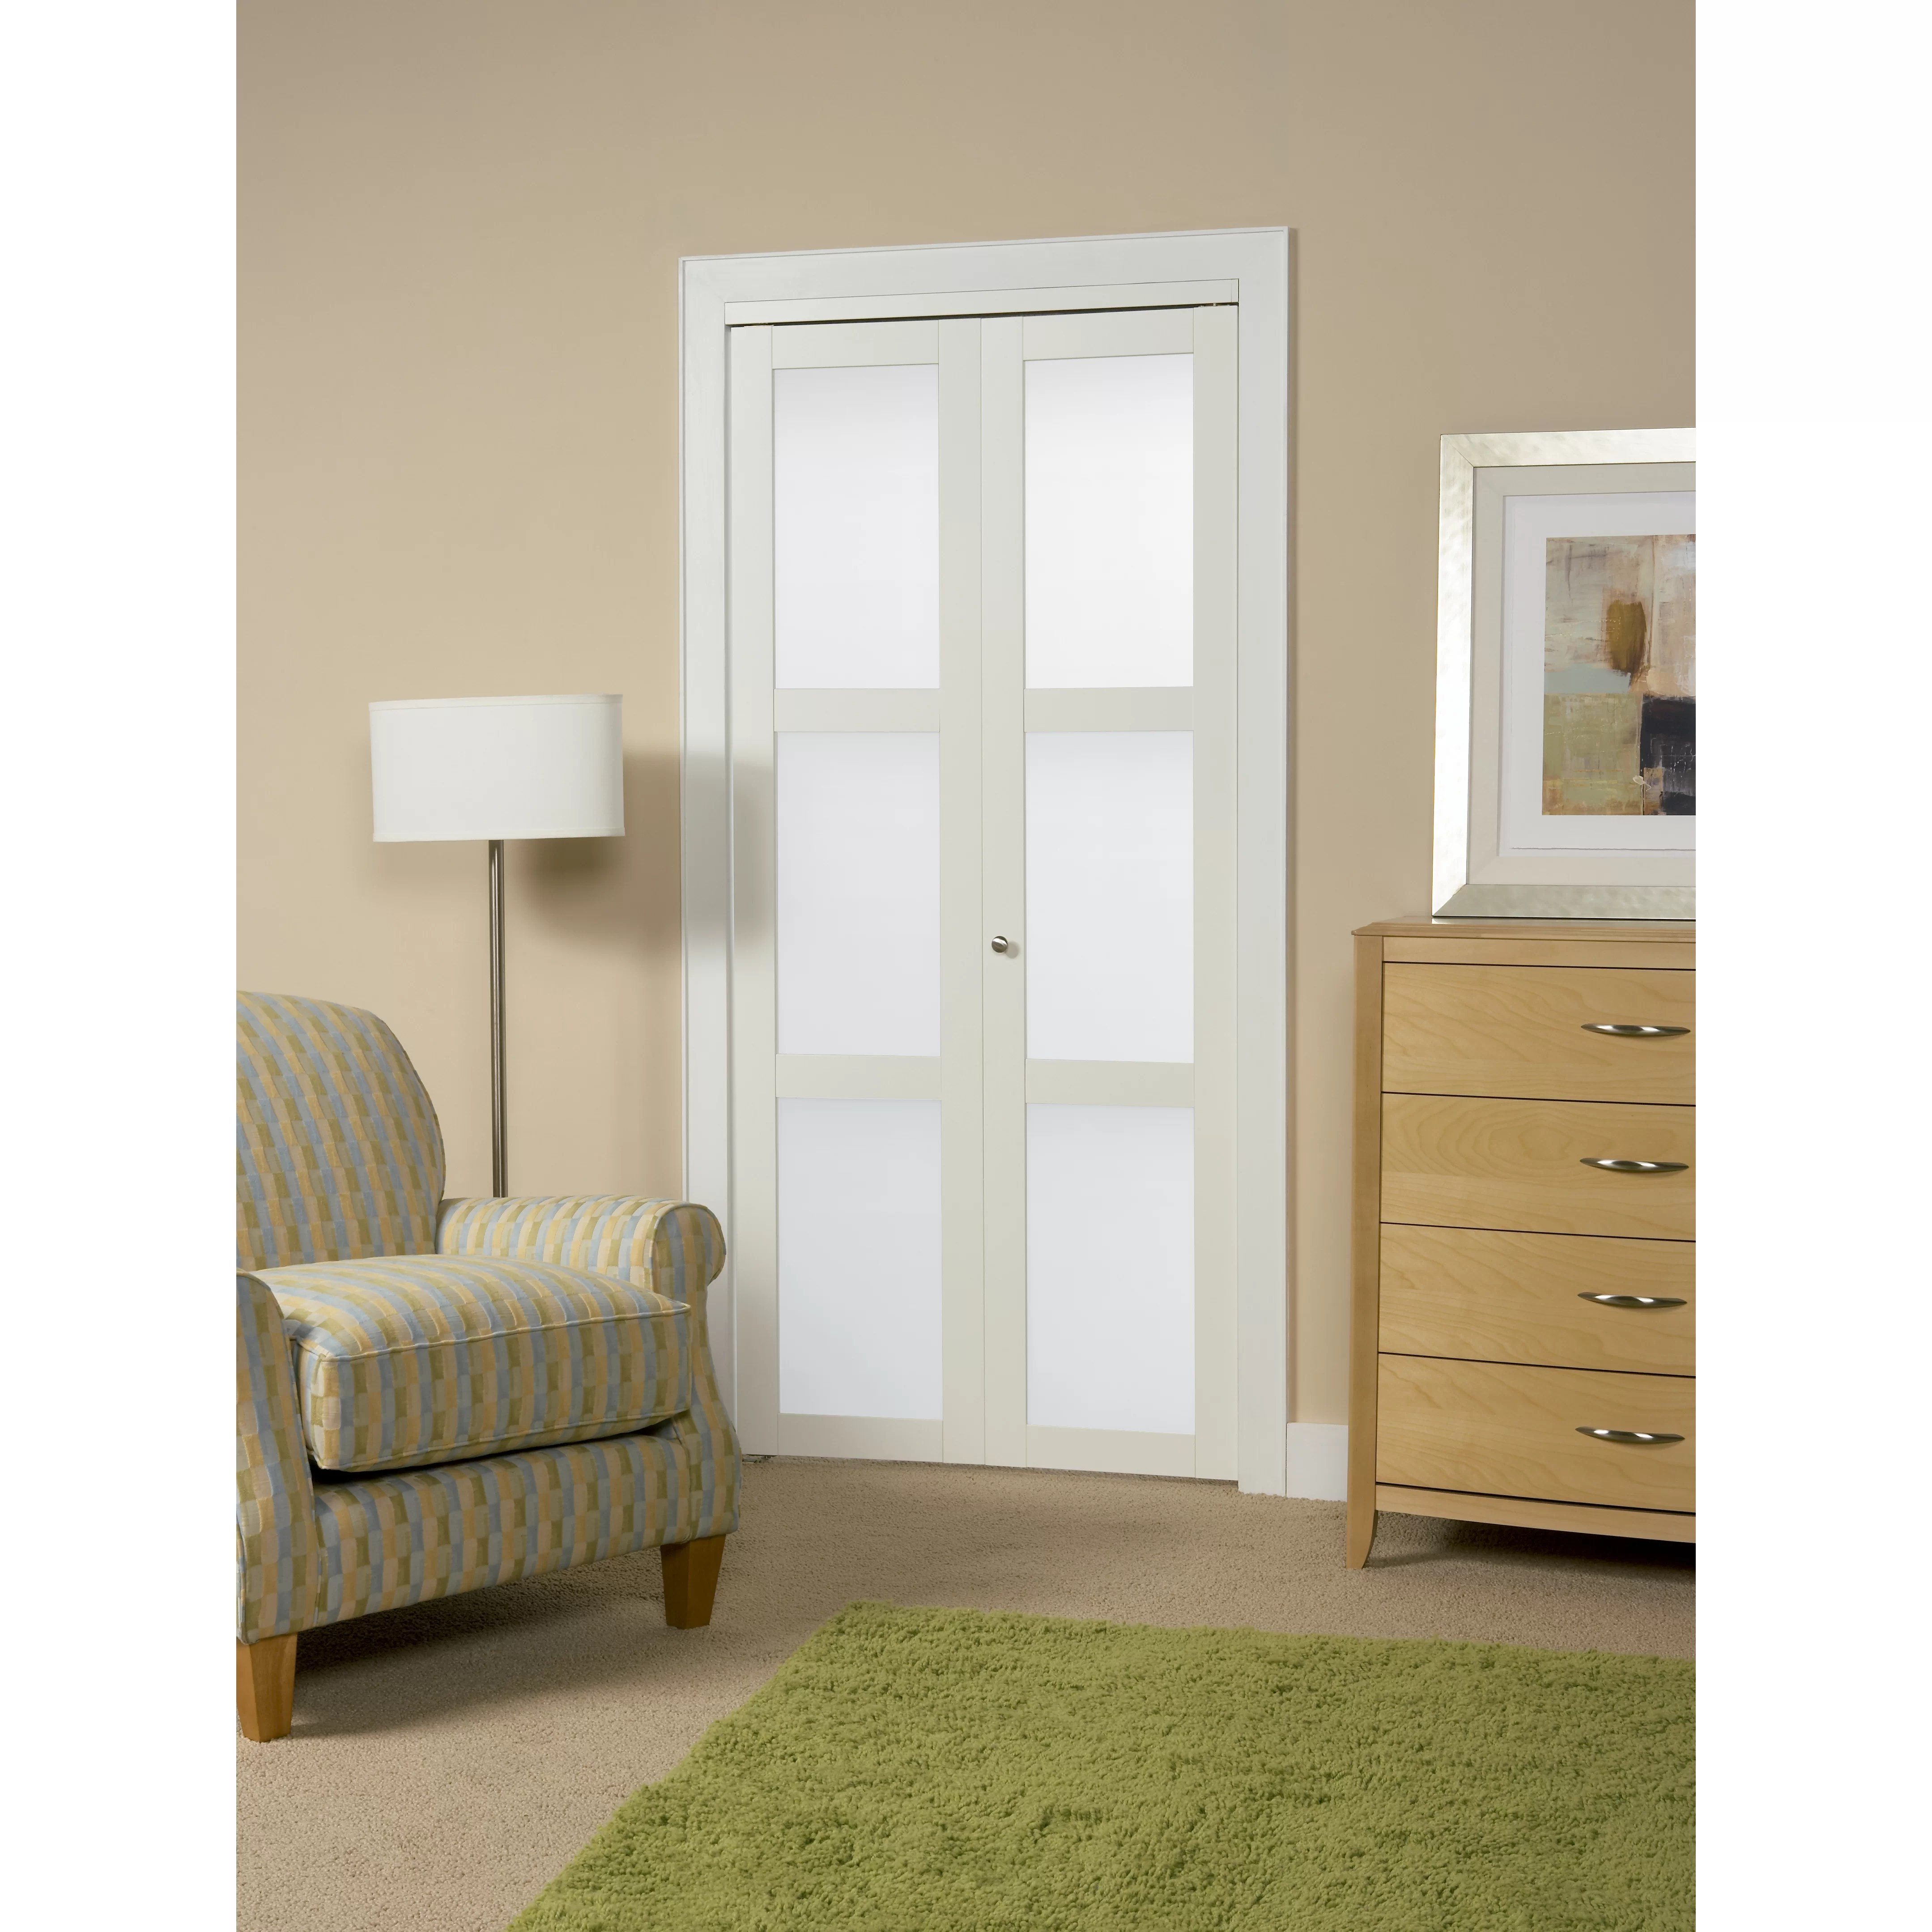 Erias home designs continental frosted glass 1 panel ironage bi fold doors for bathroom download bi fold doors for bathroom Erias Home Designs